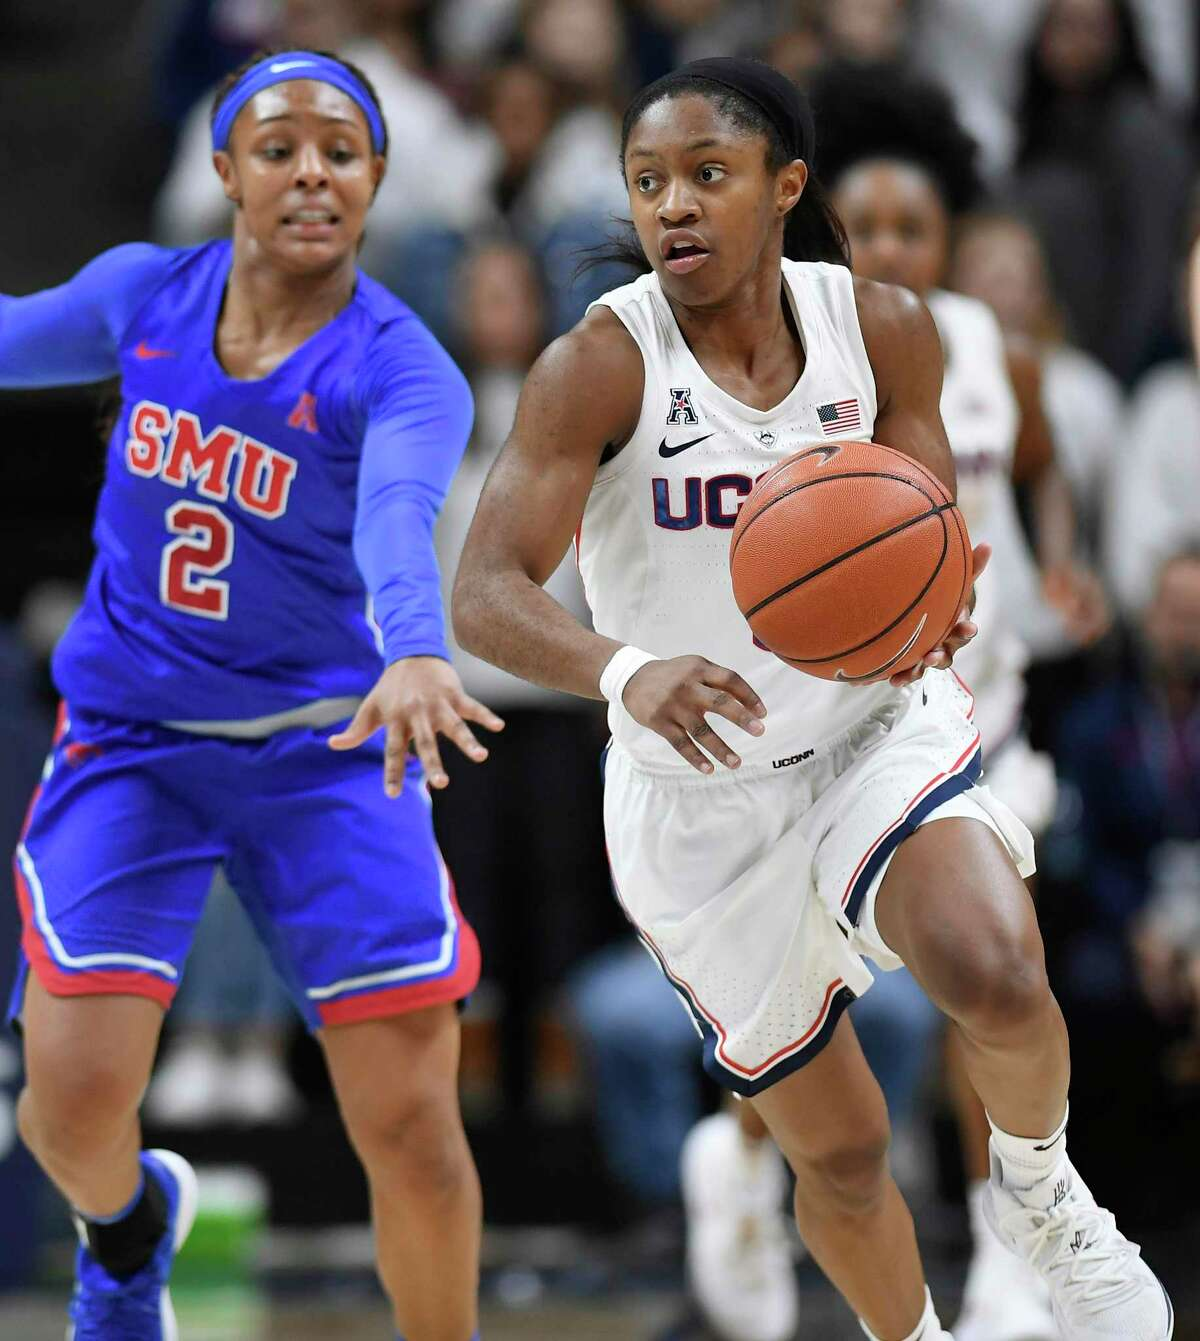 UConn's Crystal Dangerfield, right, pulls away from SMU's Ariana Whitfield on Thursday Jan. 24, 2019, in Storrs.